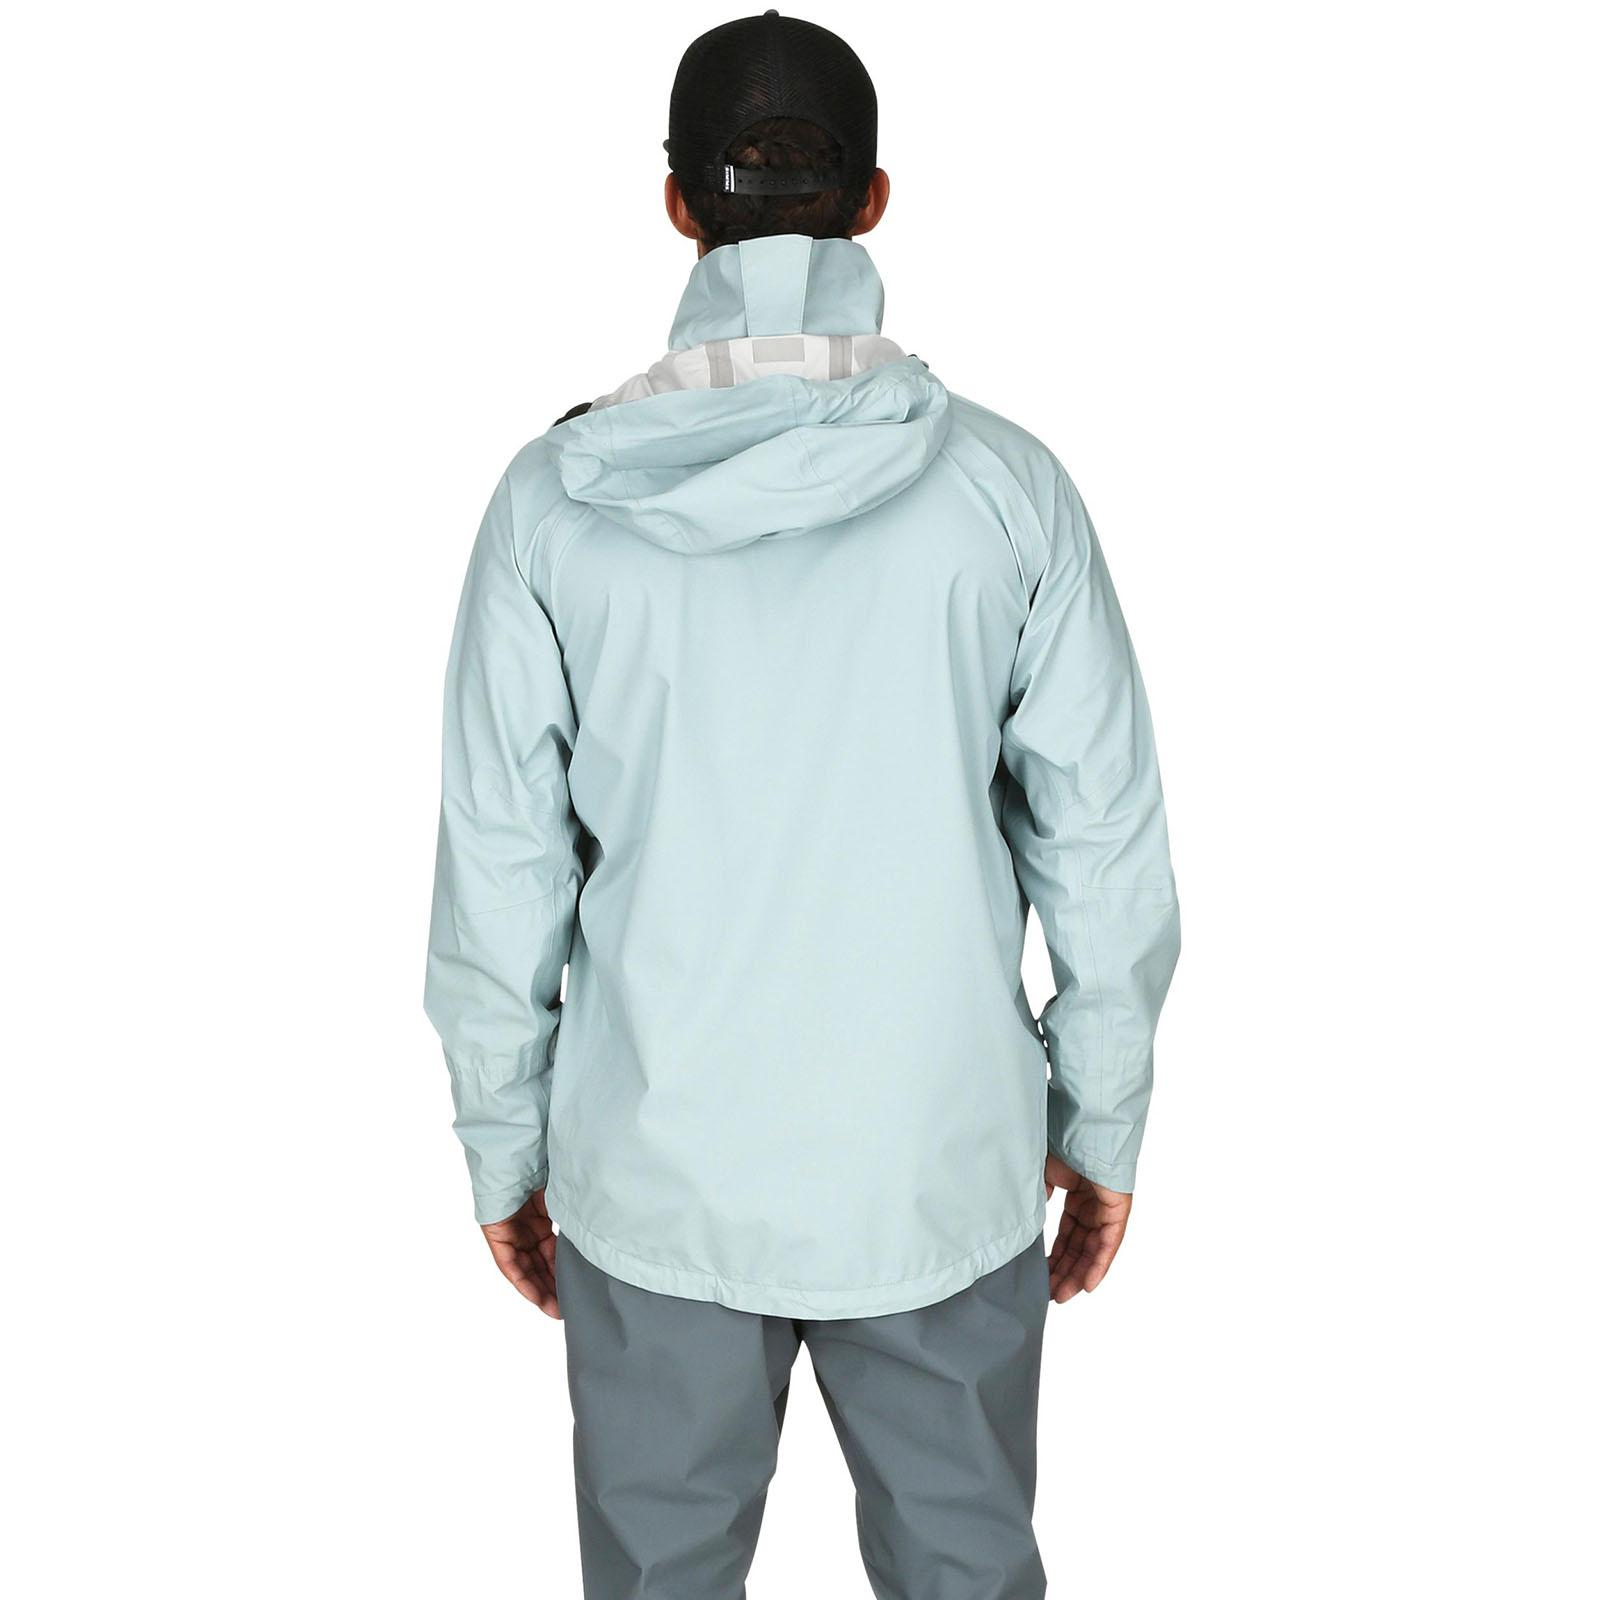 Back View - Grey Blue